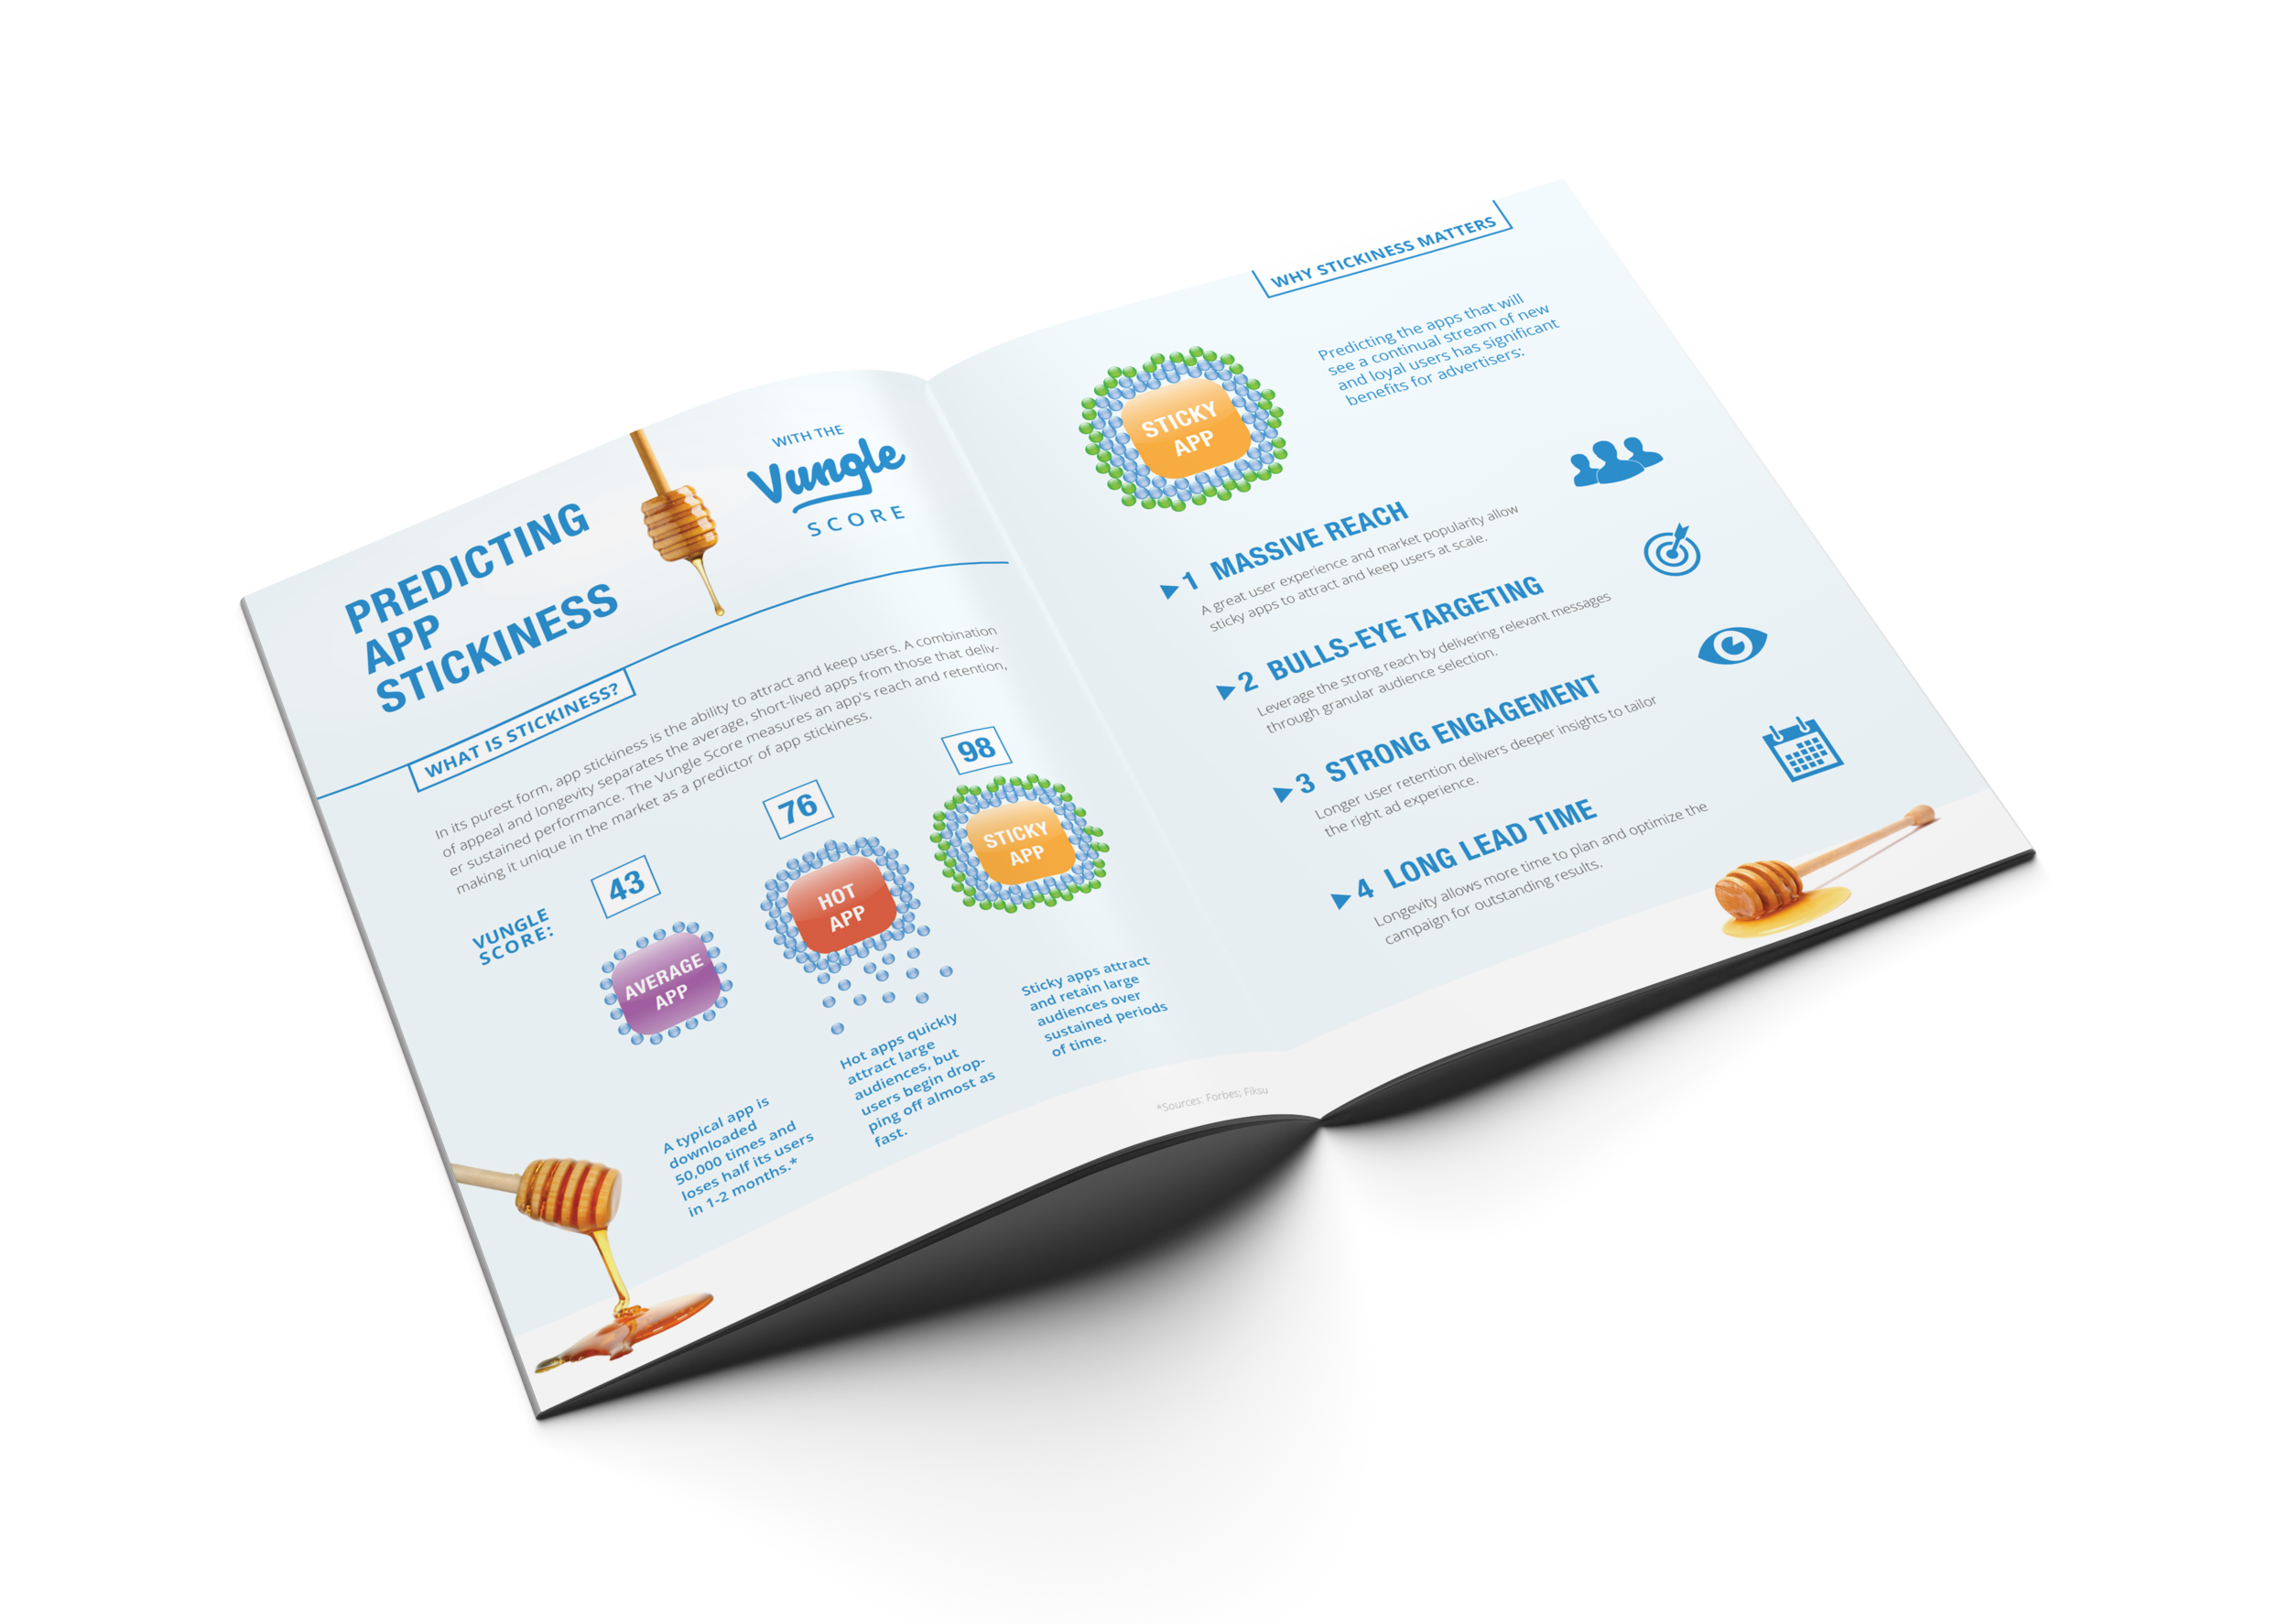 Predicting appstickiness - Booklet and infographic introducing the Vungle Score, a proprietary measure of predicting app retention